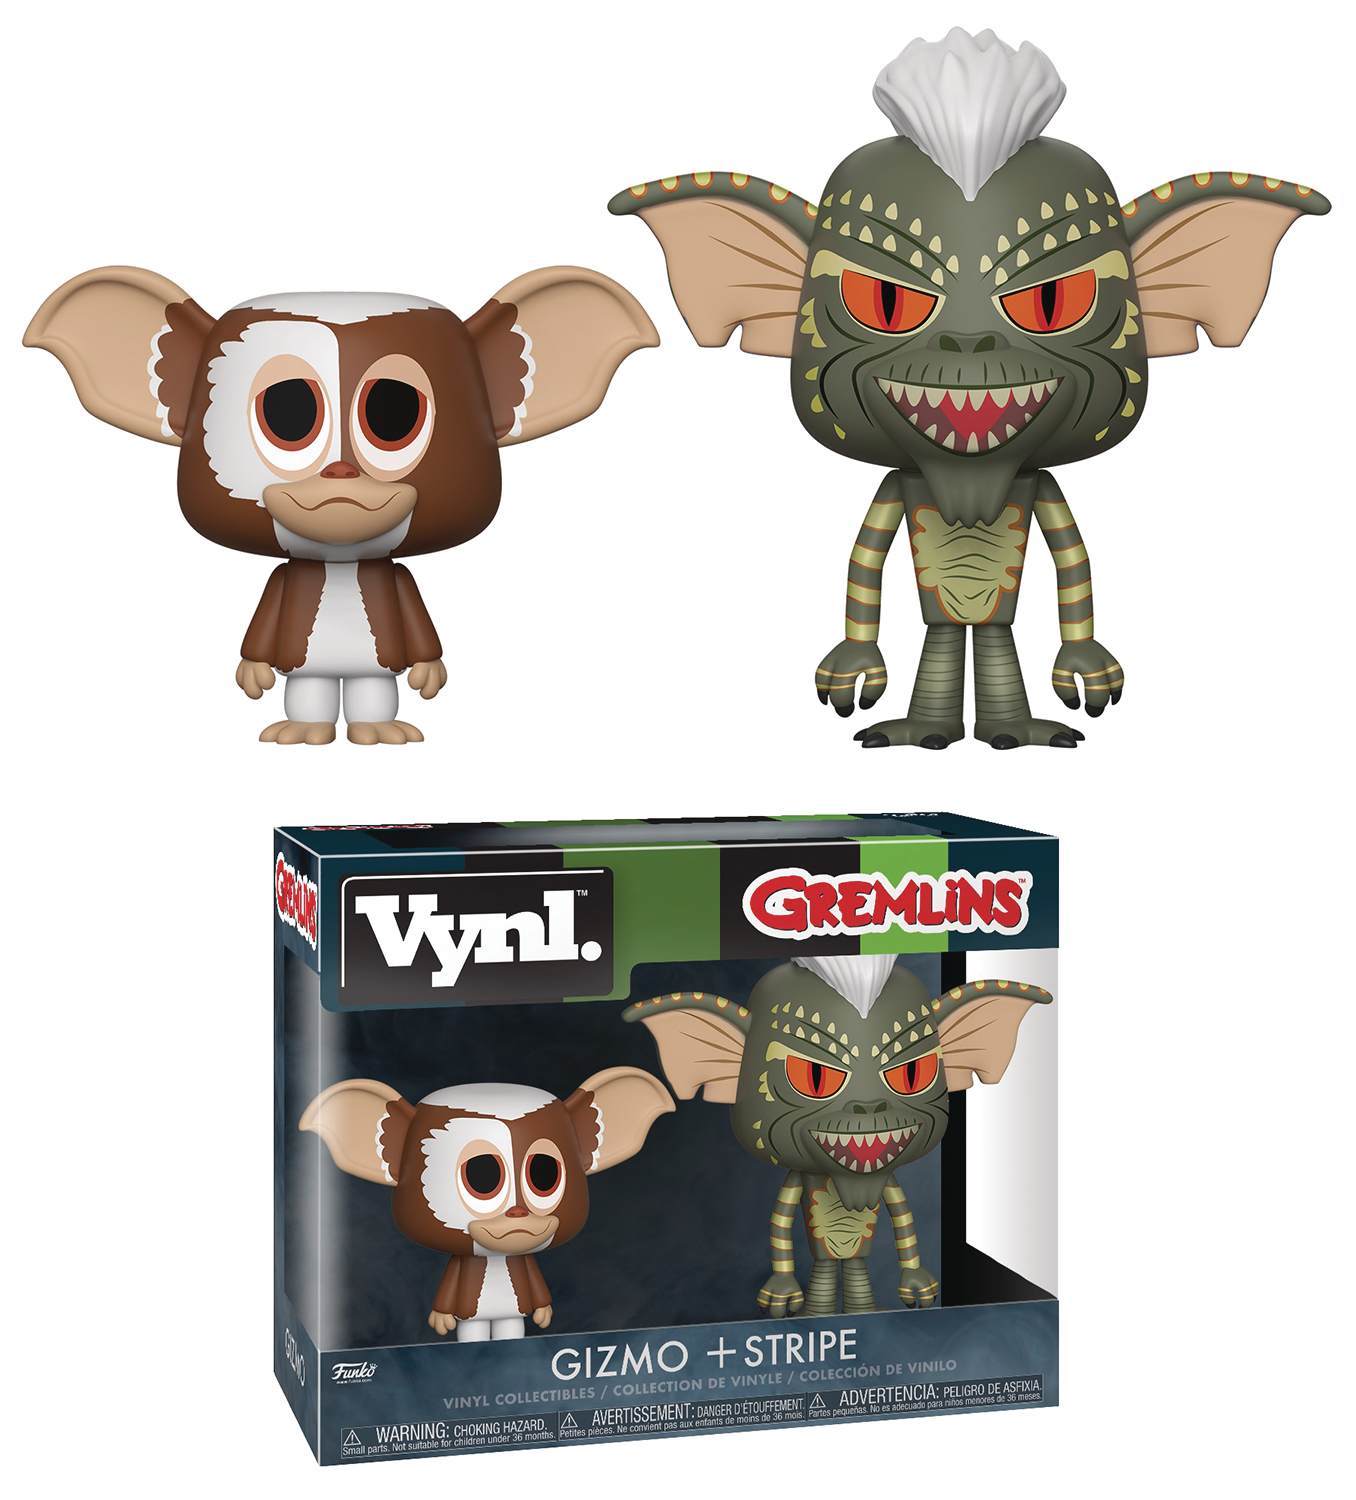 VYNL GREMLINS GIZMO & STRIPE VIN FIG 2PK (JUN188415)